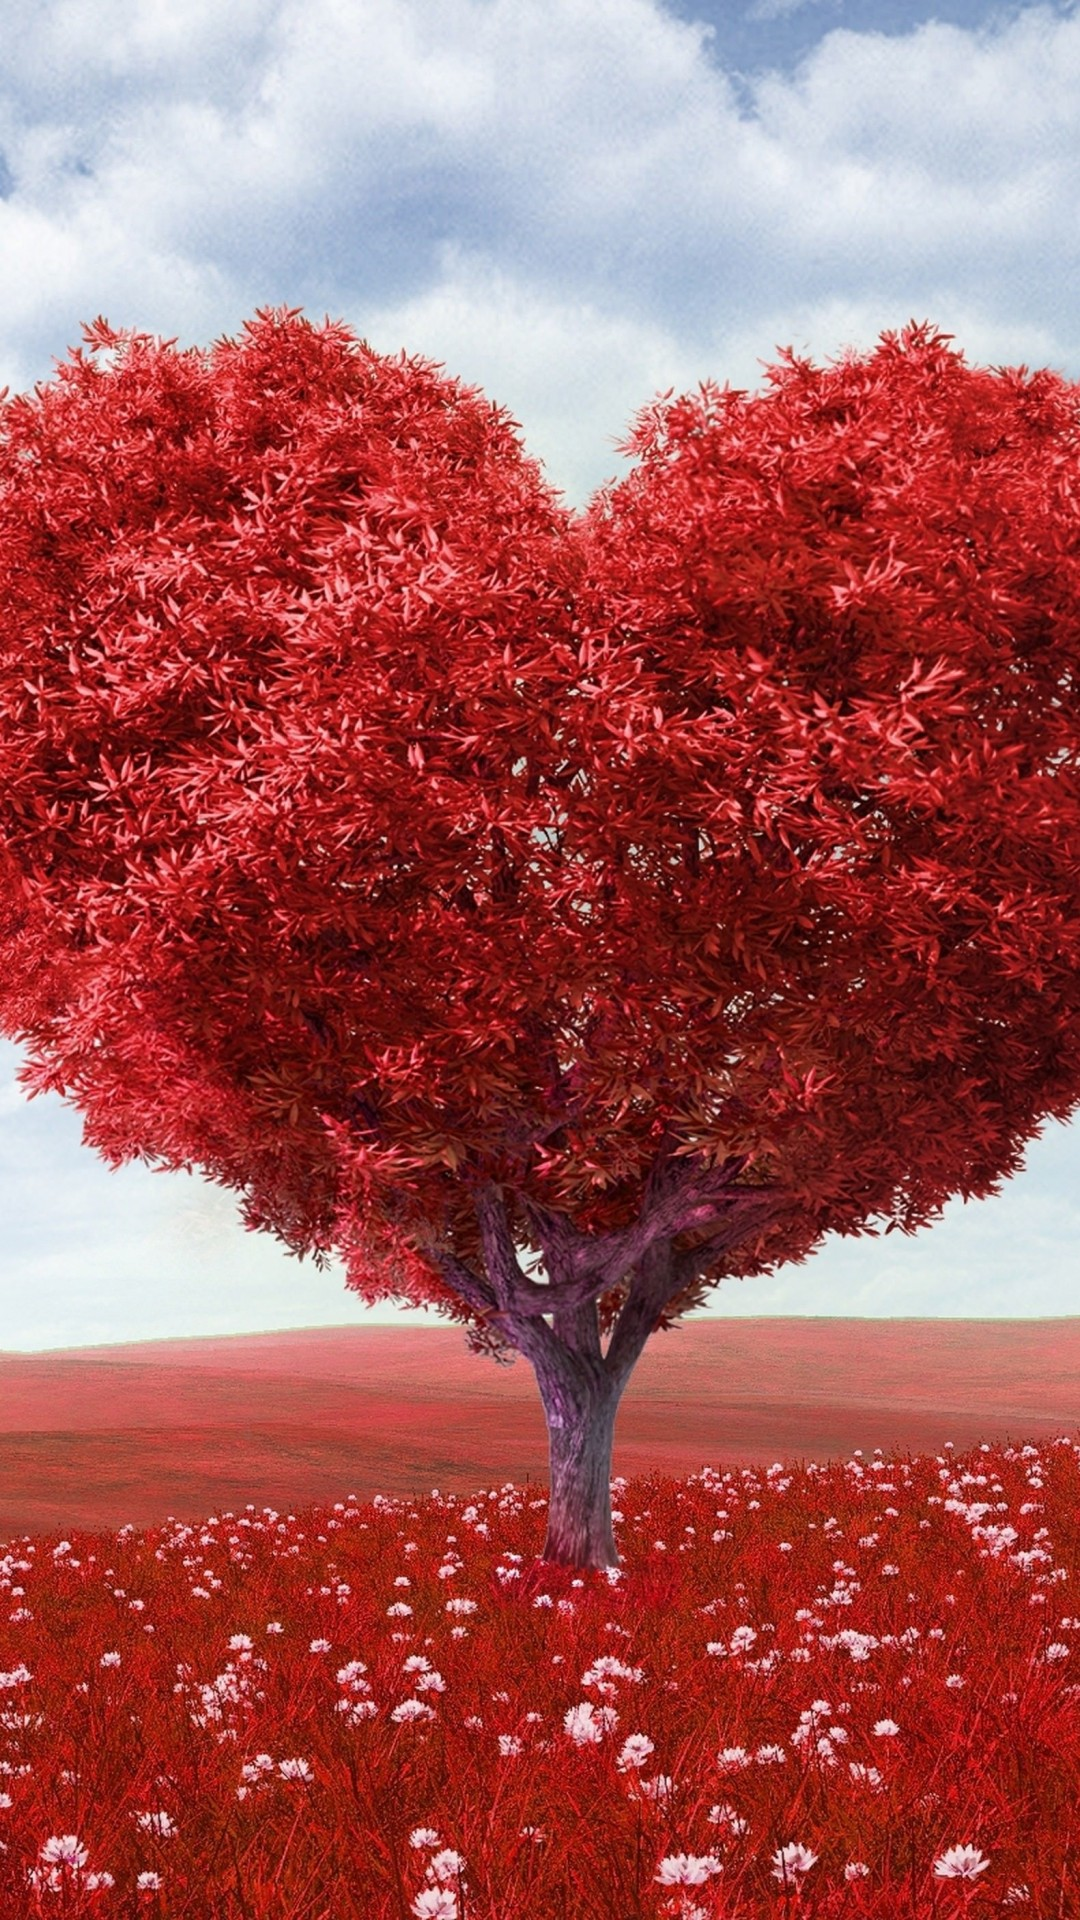 The Tree Of Love Wallpaper for Motorola Moto X